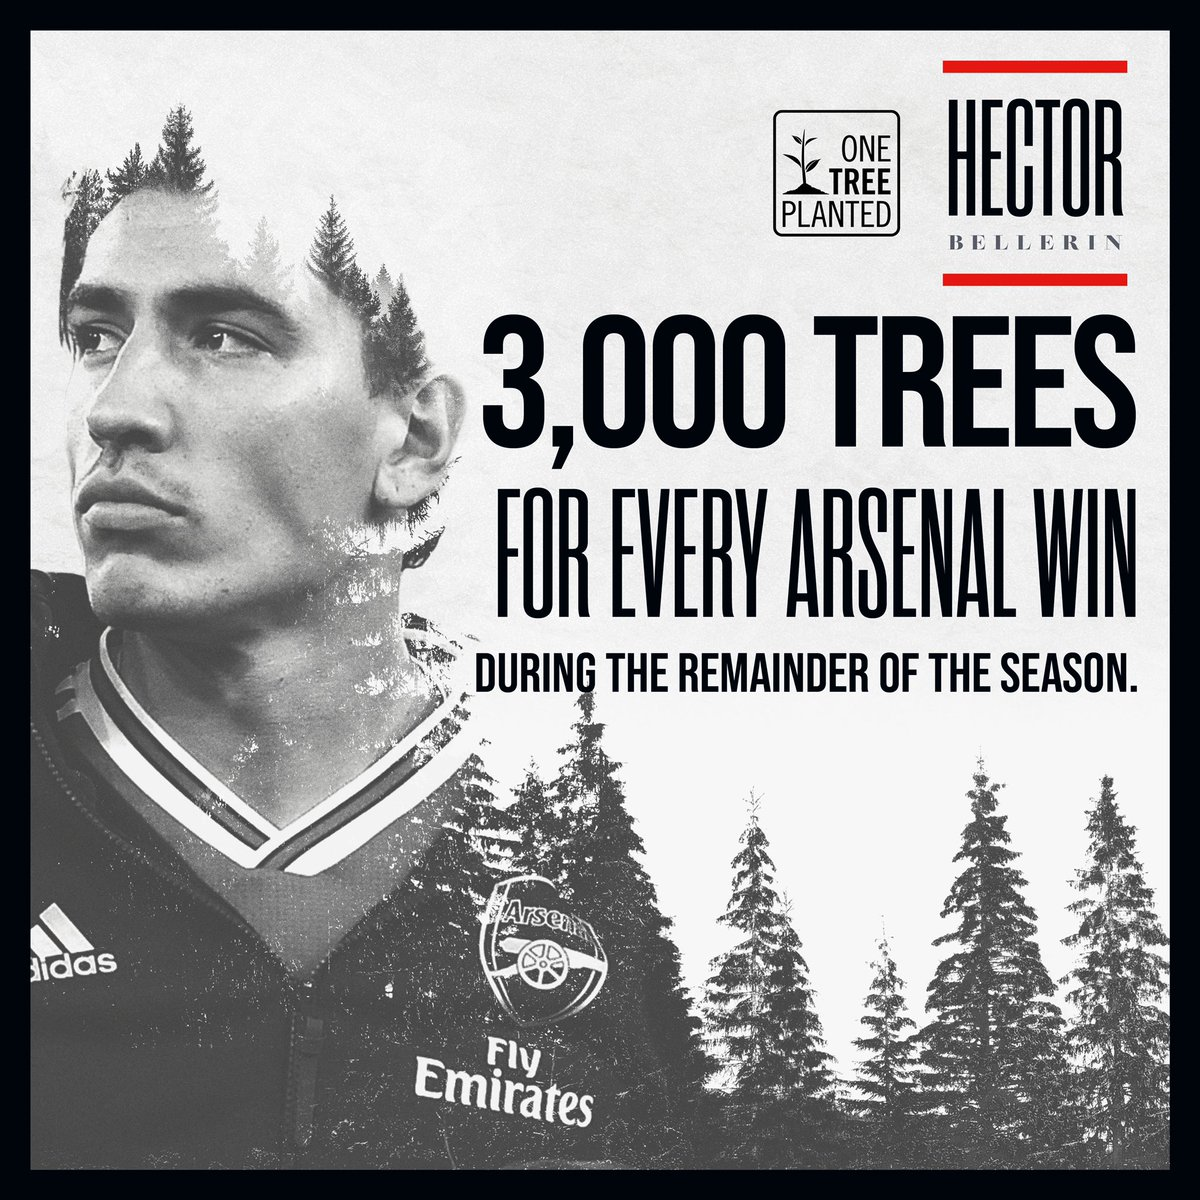 For every @Arsenal game we win this season I will plant 3,000 trees to help combat the carbon emissions issues we have. Follow the link to learn more on how you can get involved by planting a tree with me @onetreeplanted 🌳https://t.co/mQSqqGc7R5 https://t.co/d0J9OGa1jO